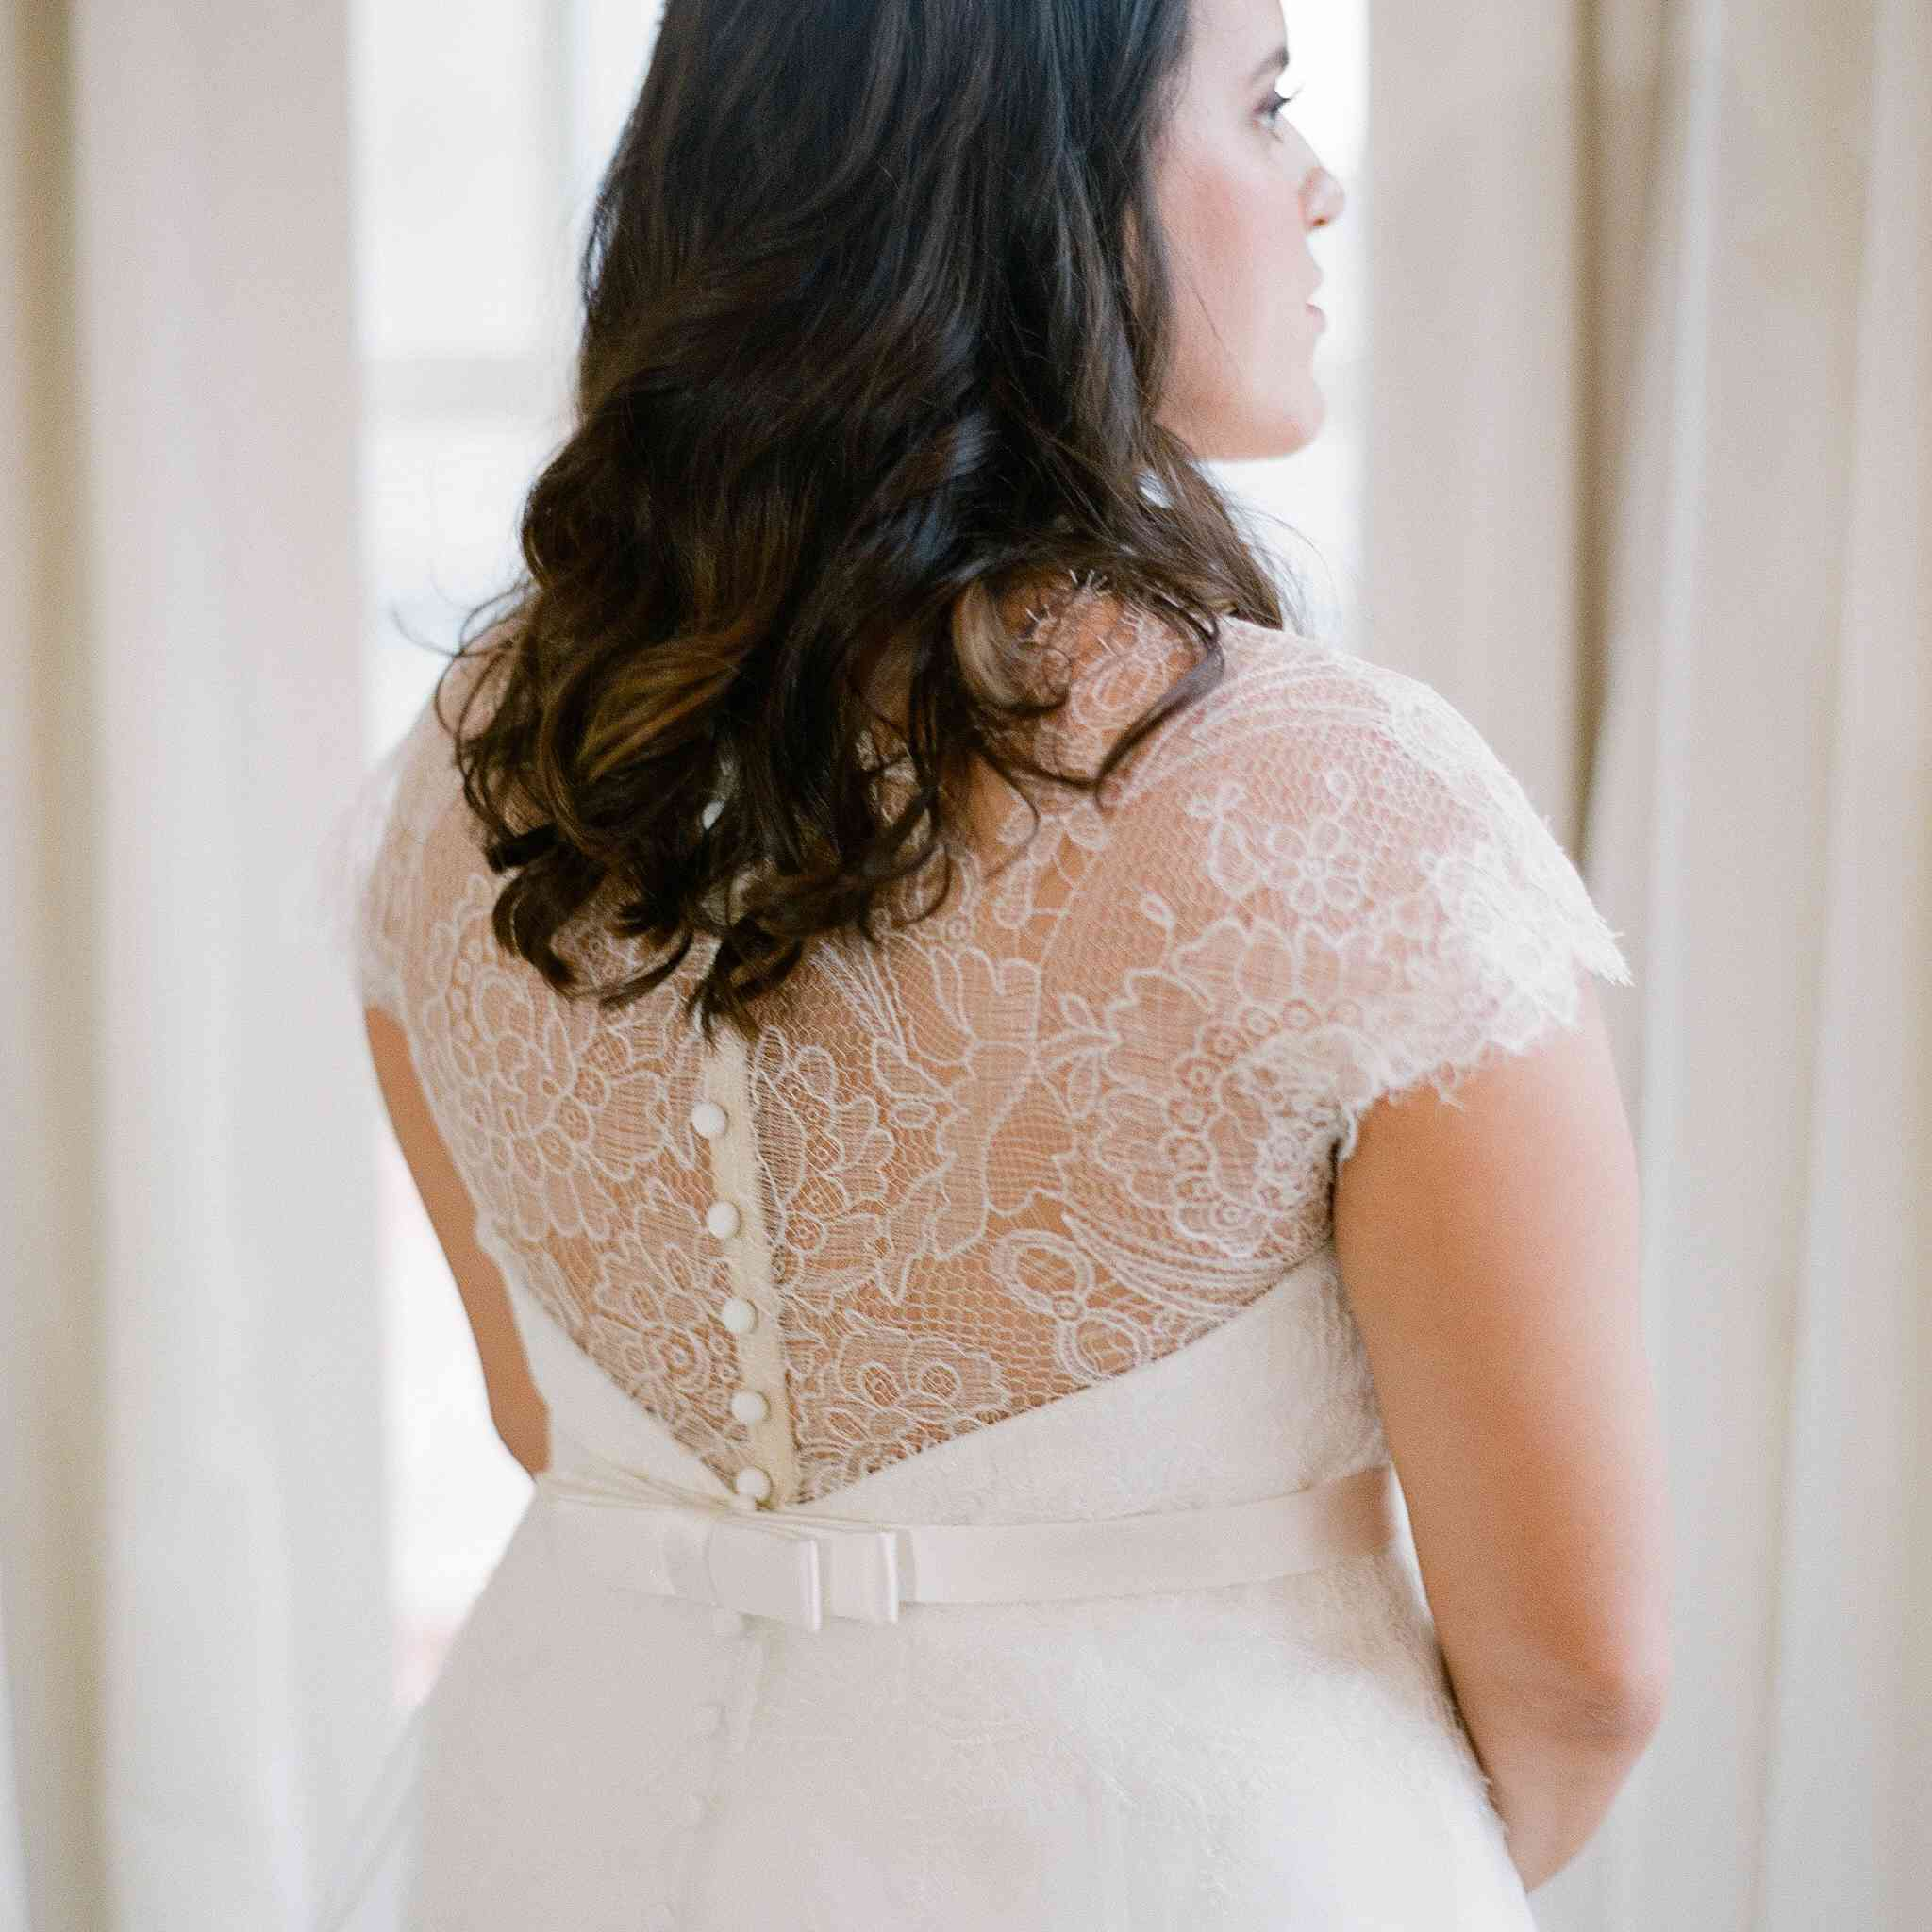 Back of bride's wedding gown